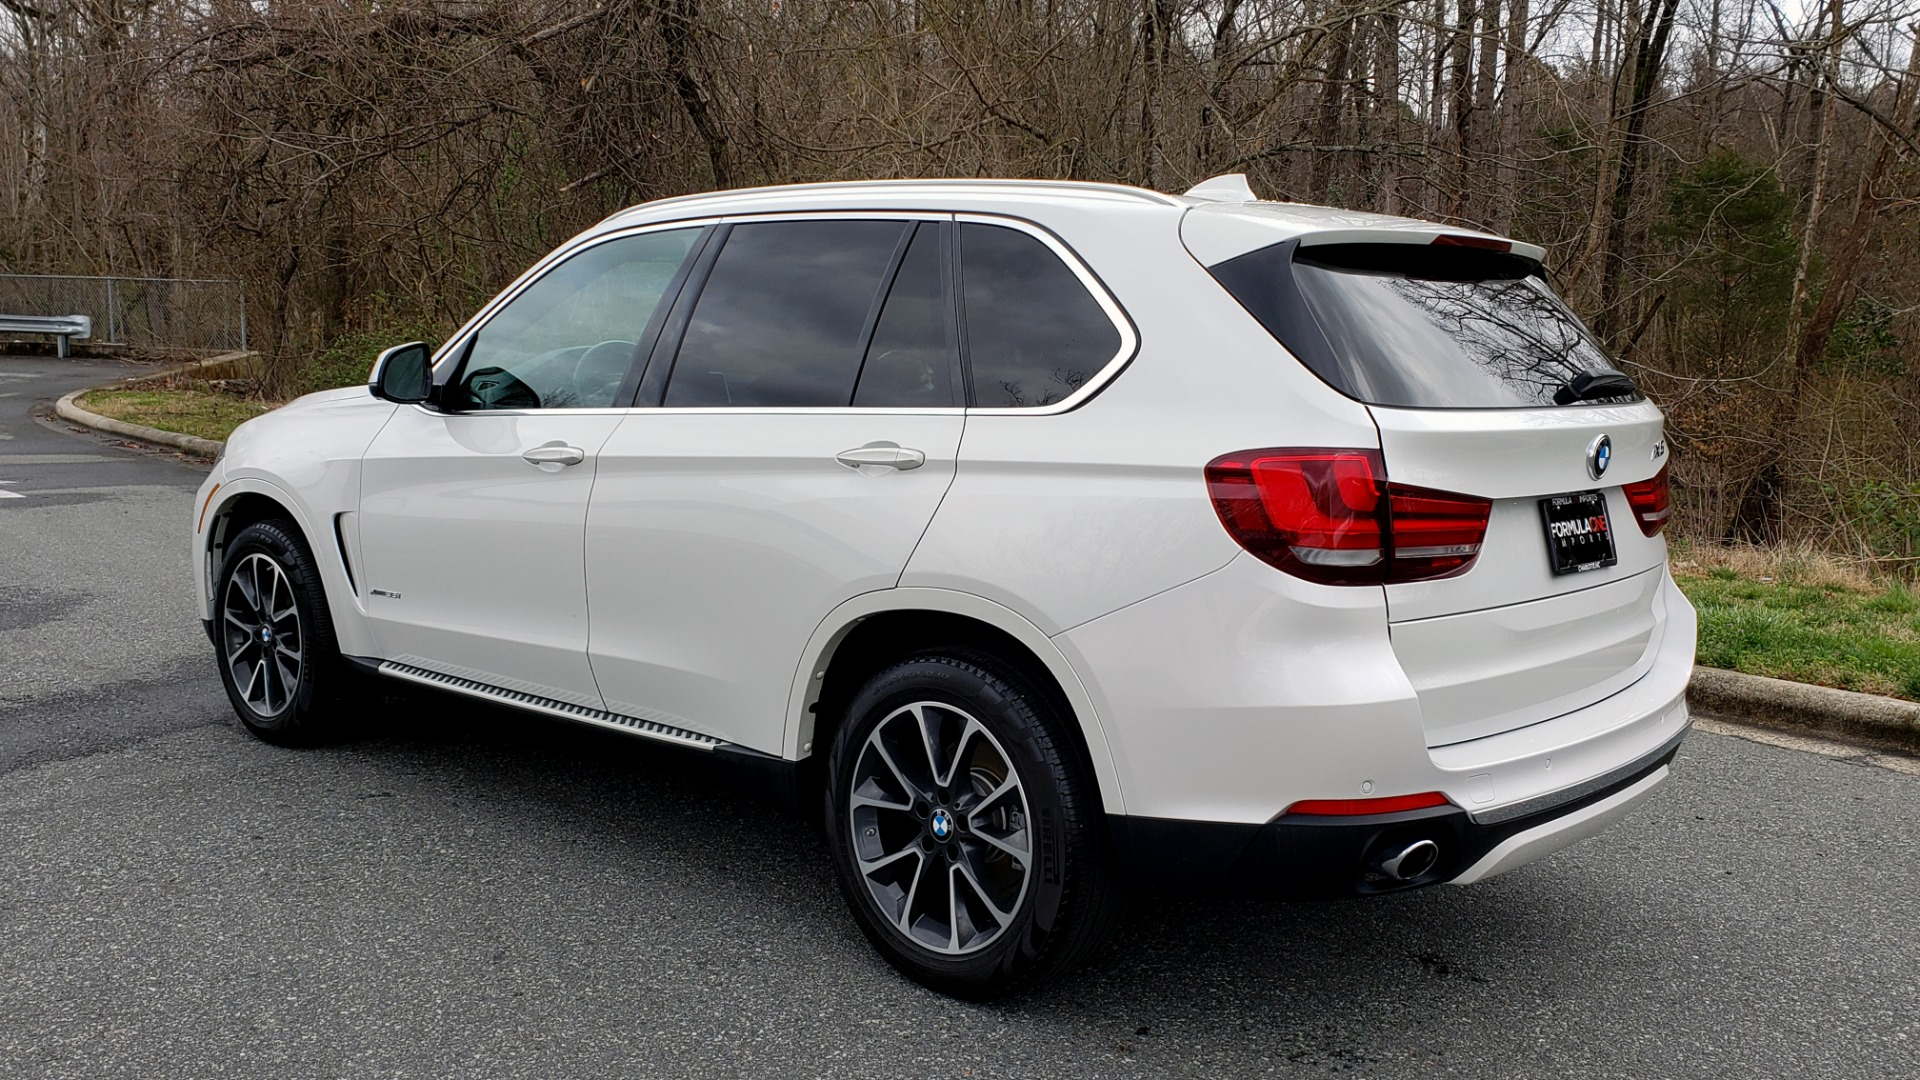 Used 2017 BMW X5 XDRIVE35I / NAV / HUD / DRVR ASST / SUNROOF / REARVIEW for sale Sold at Formula Imports in Charlotte NC 28227 3